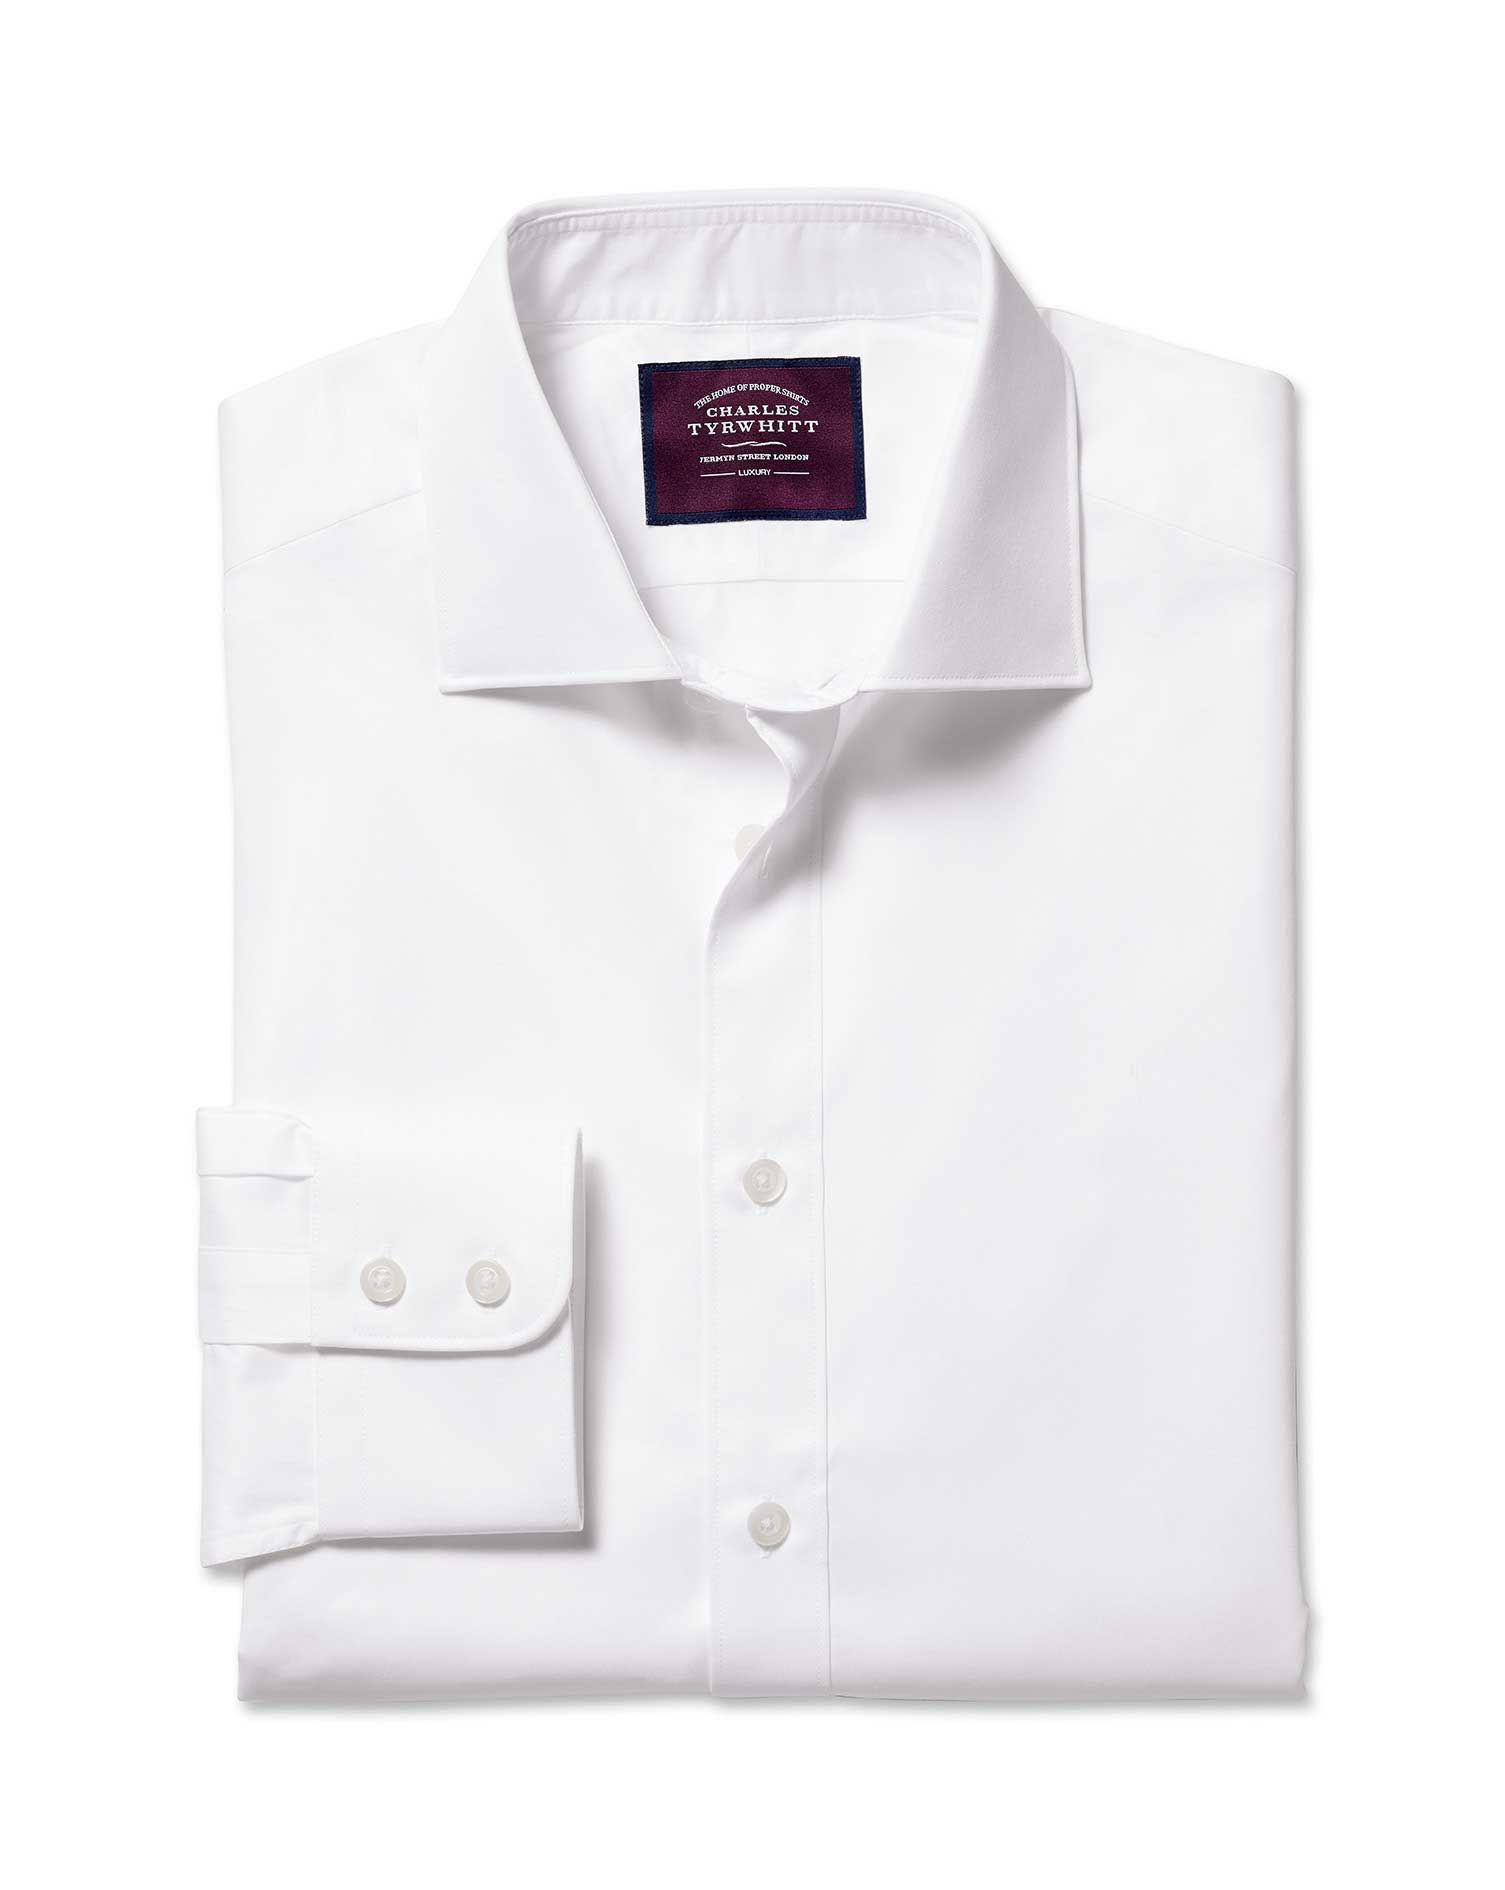 Extra Slim Fit Semi-Cutaway Luxury Twill White Egyptian Cotton Formal Shirt Double Cuff Size 16.5/34